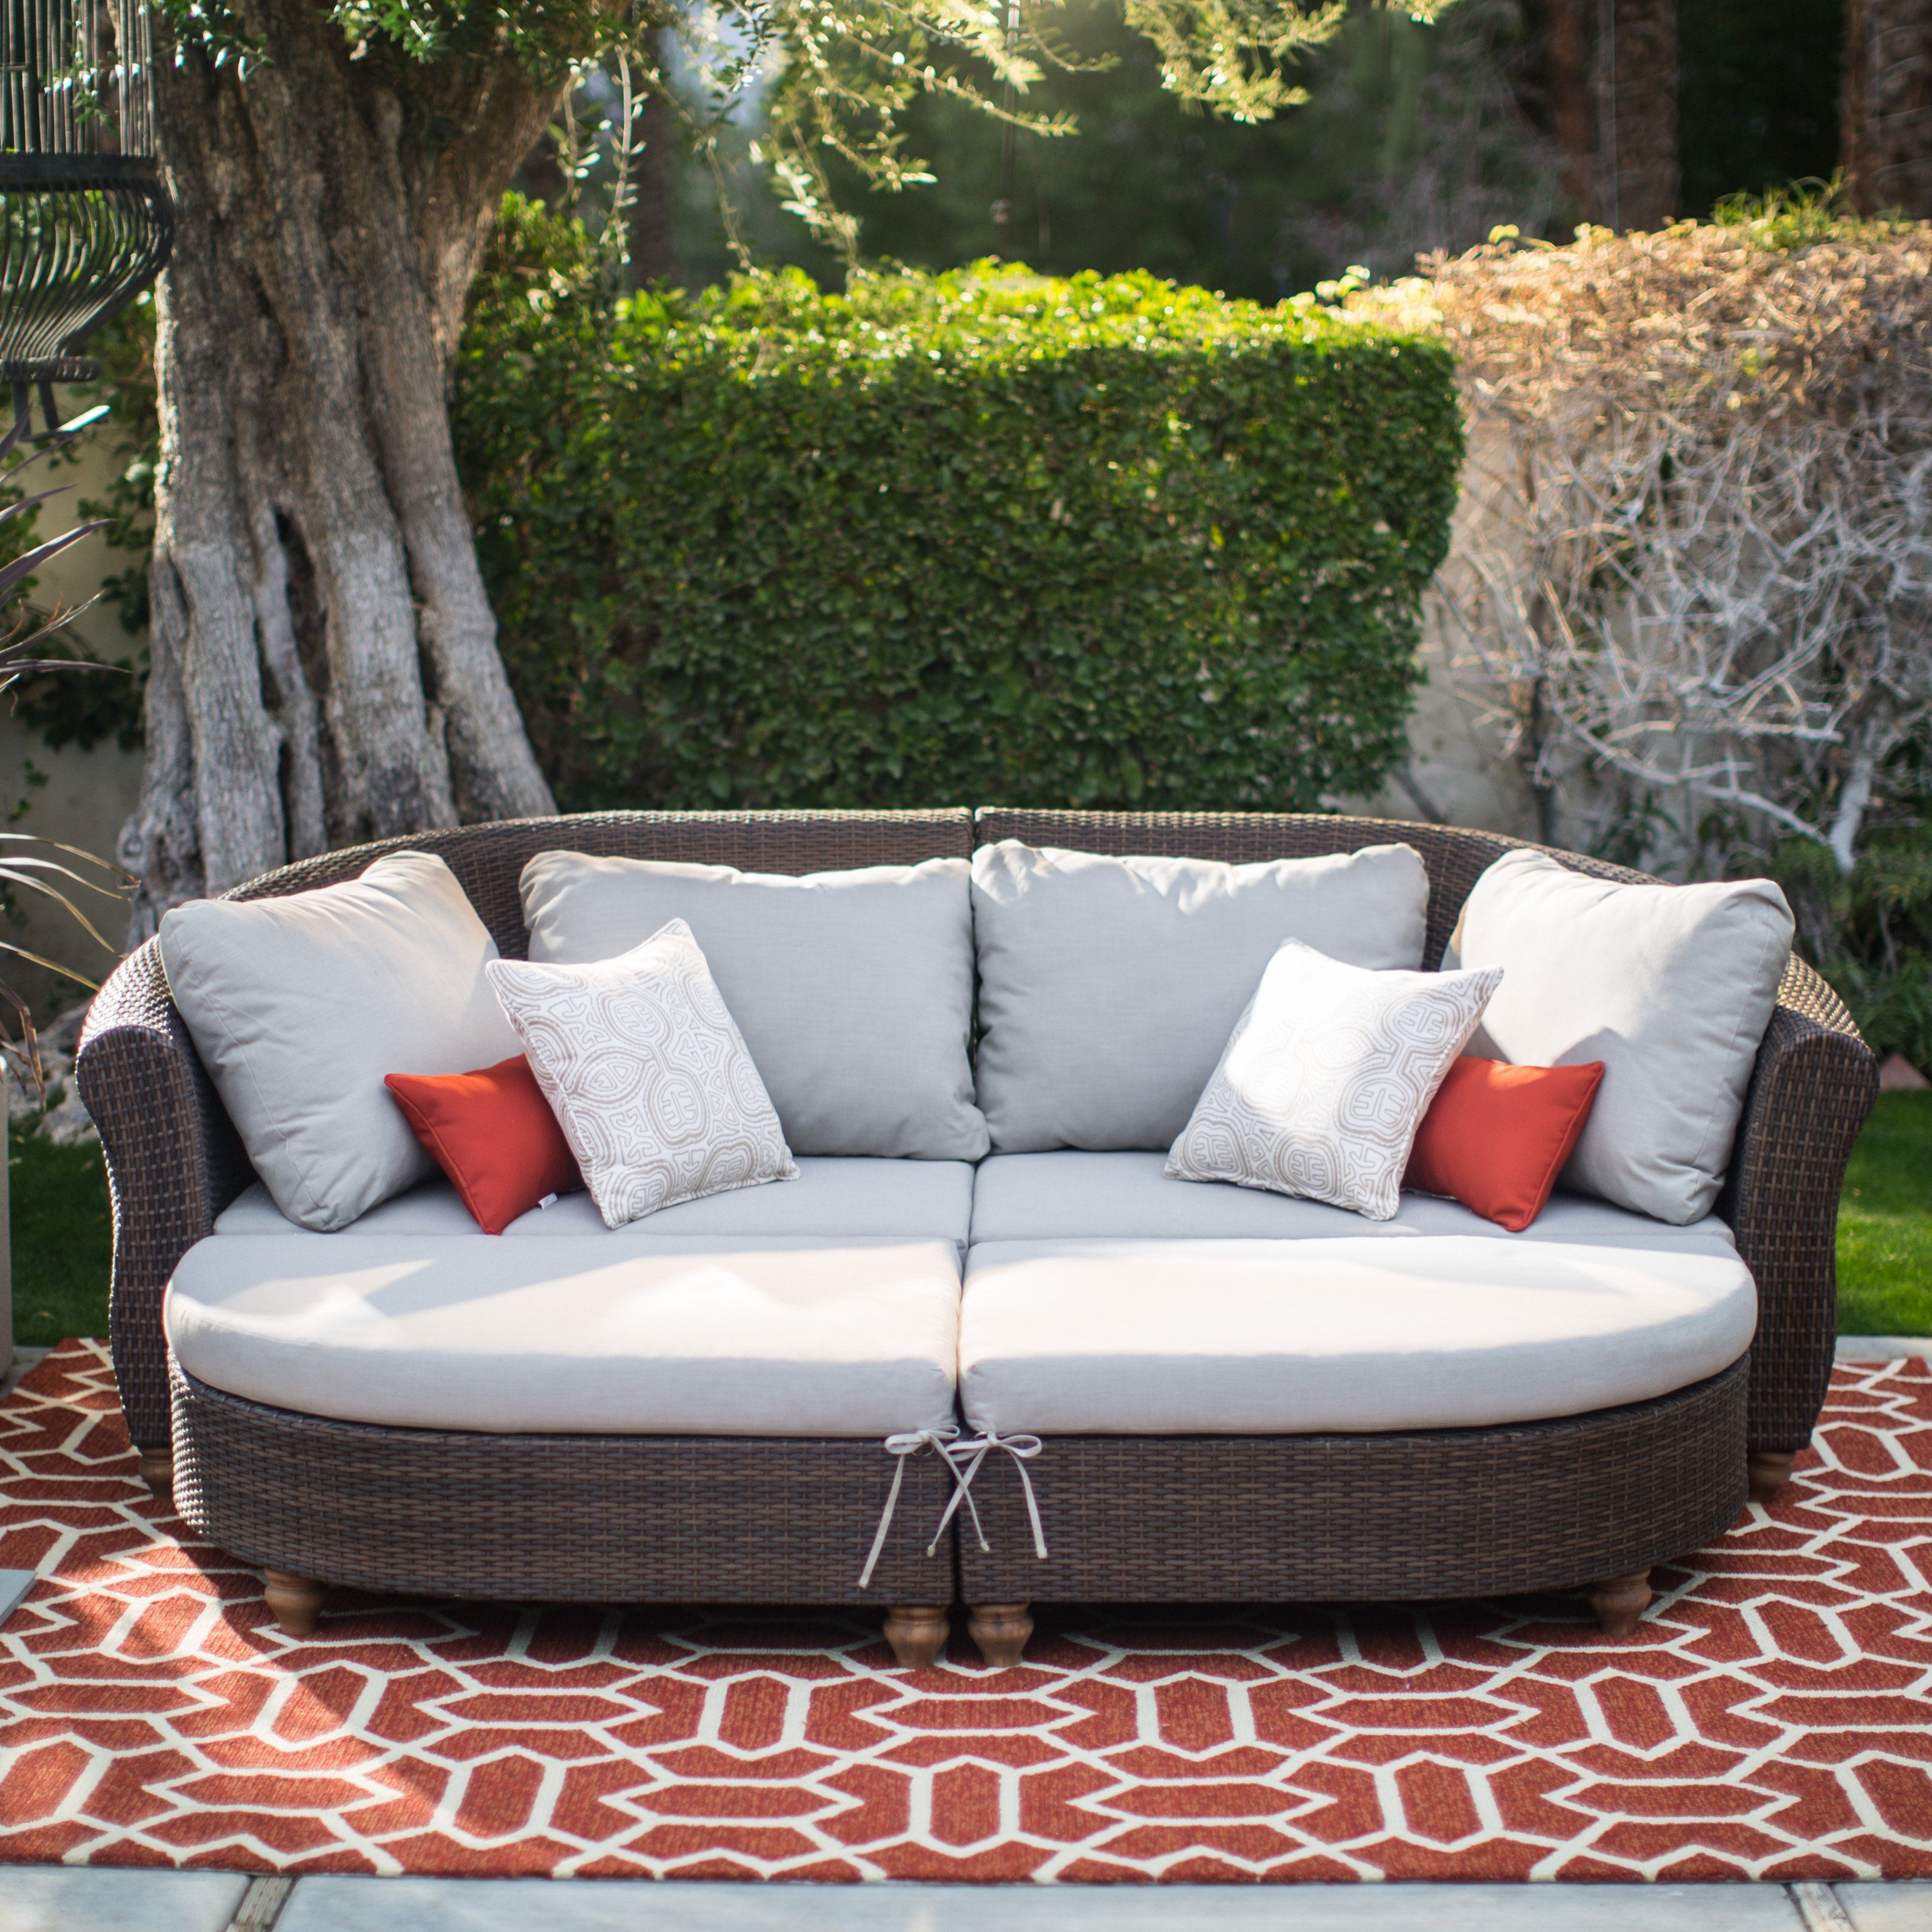 Belham Living Polanco Curved Back All Weather Wicker Sofa